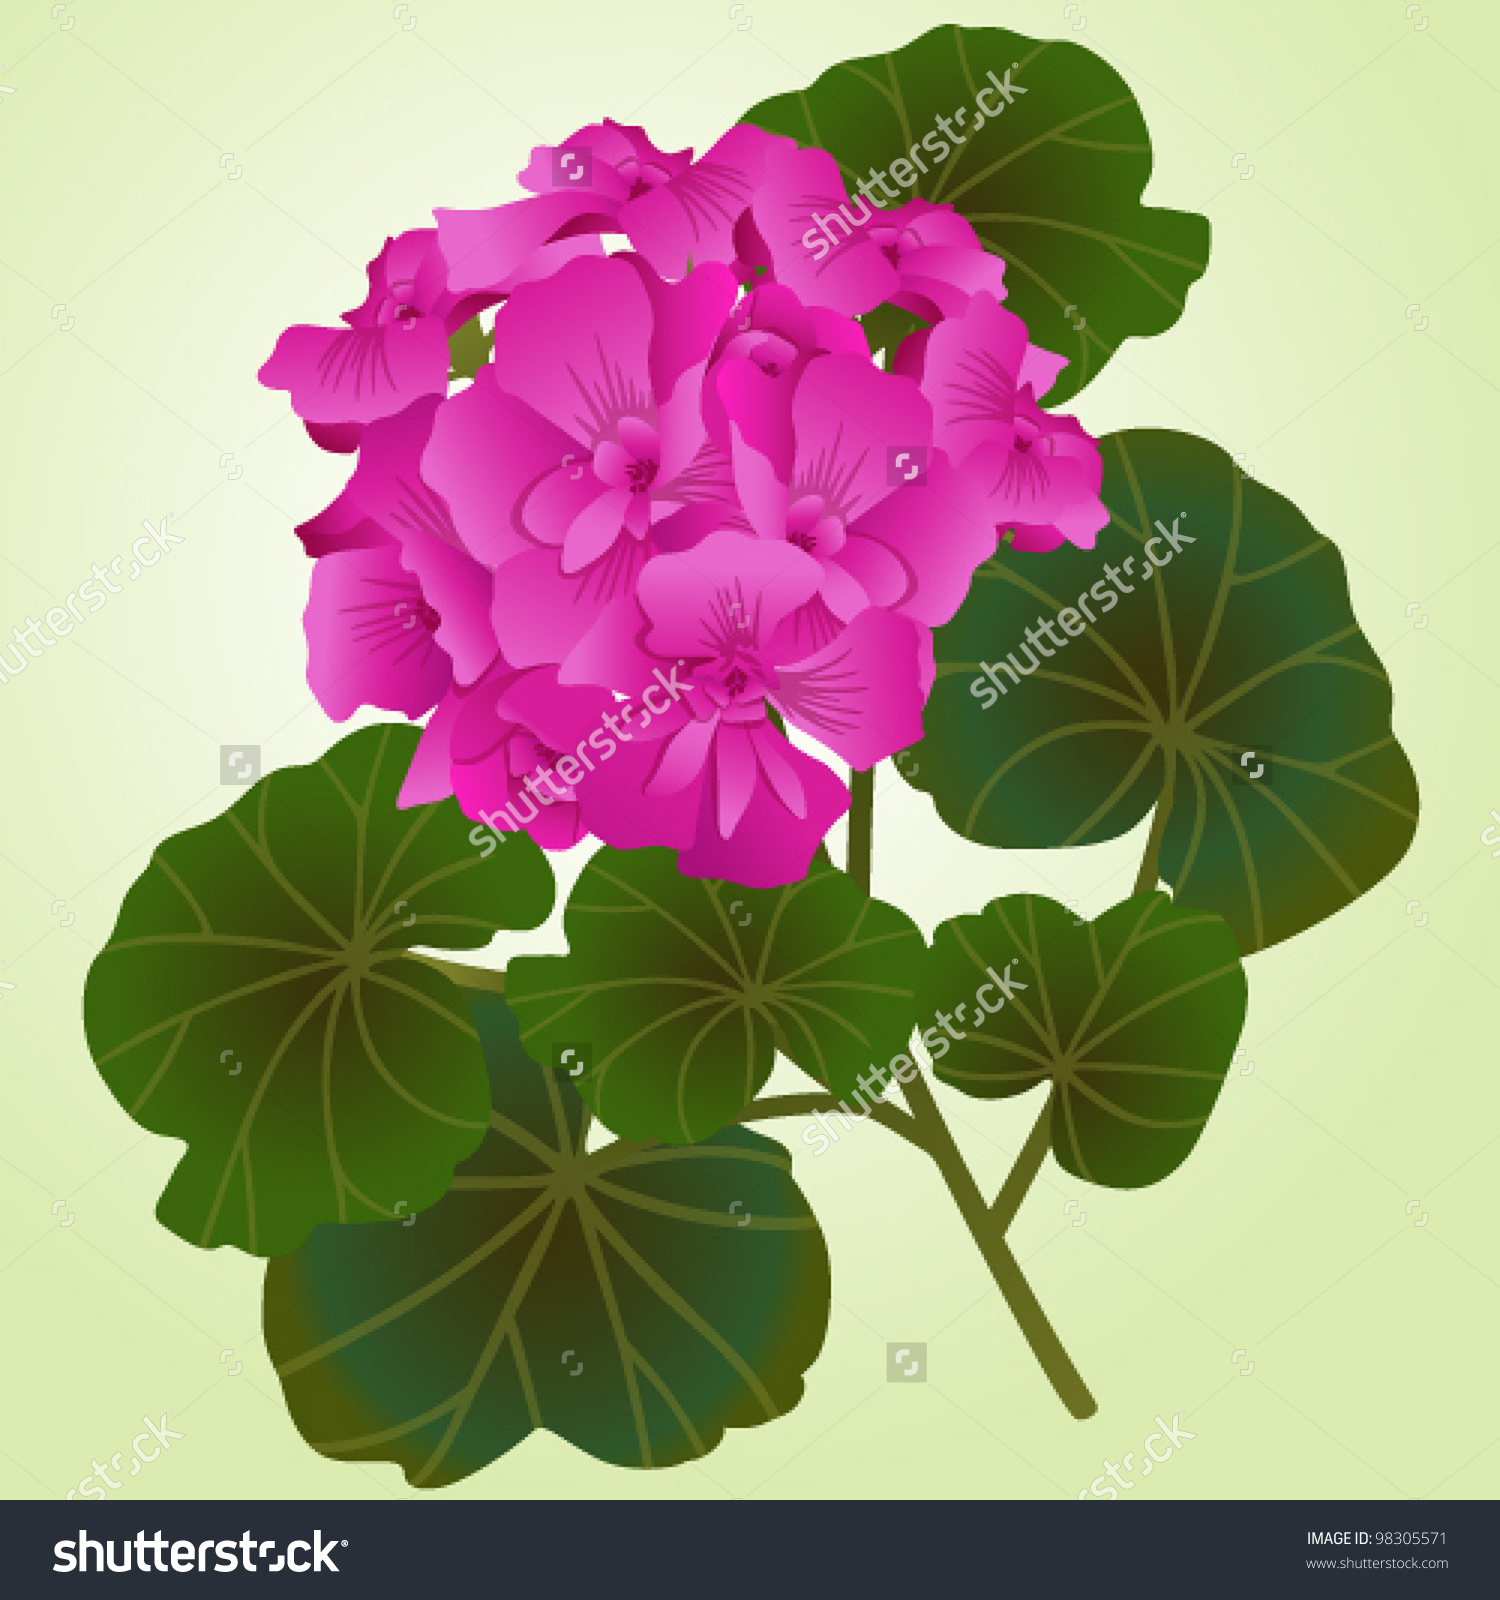 Flowering Sprig Of Lilac Geranium On A Light Background Stock.